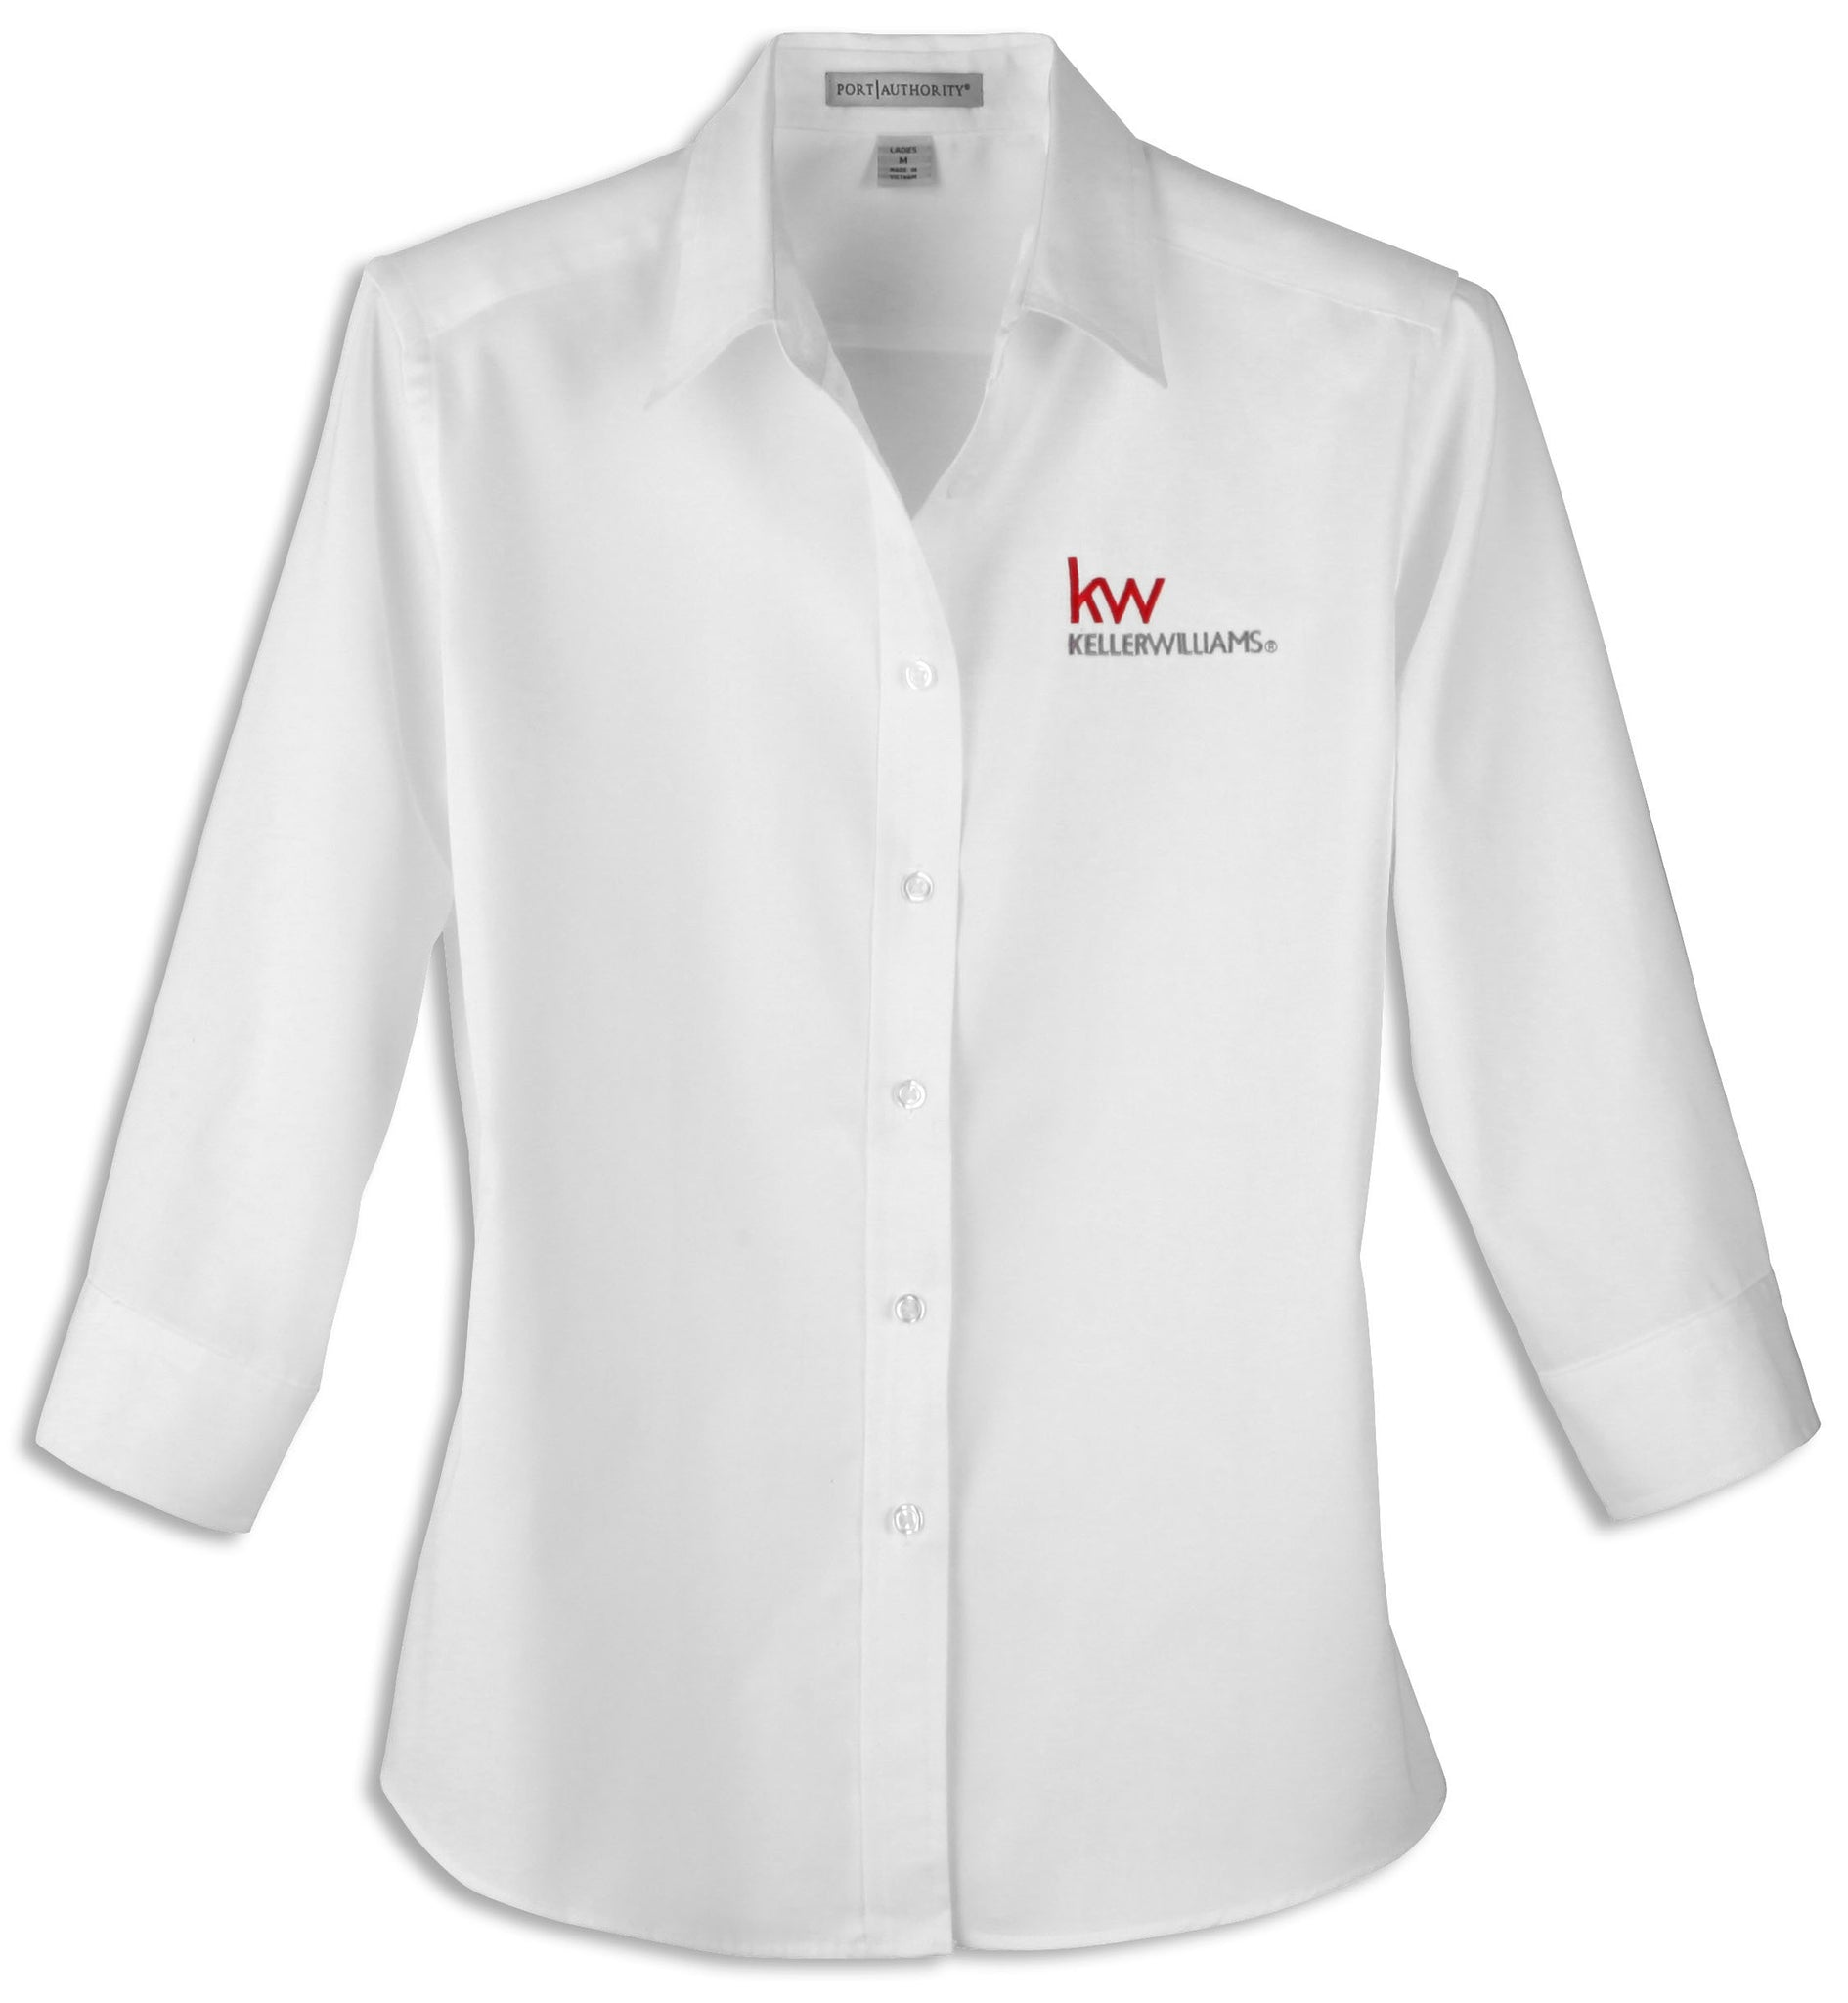 Women's KW Button Down Shirts